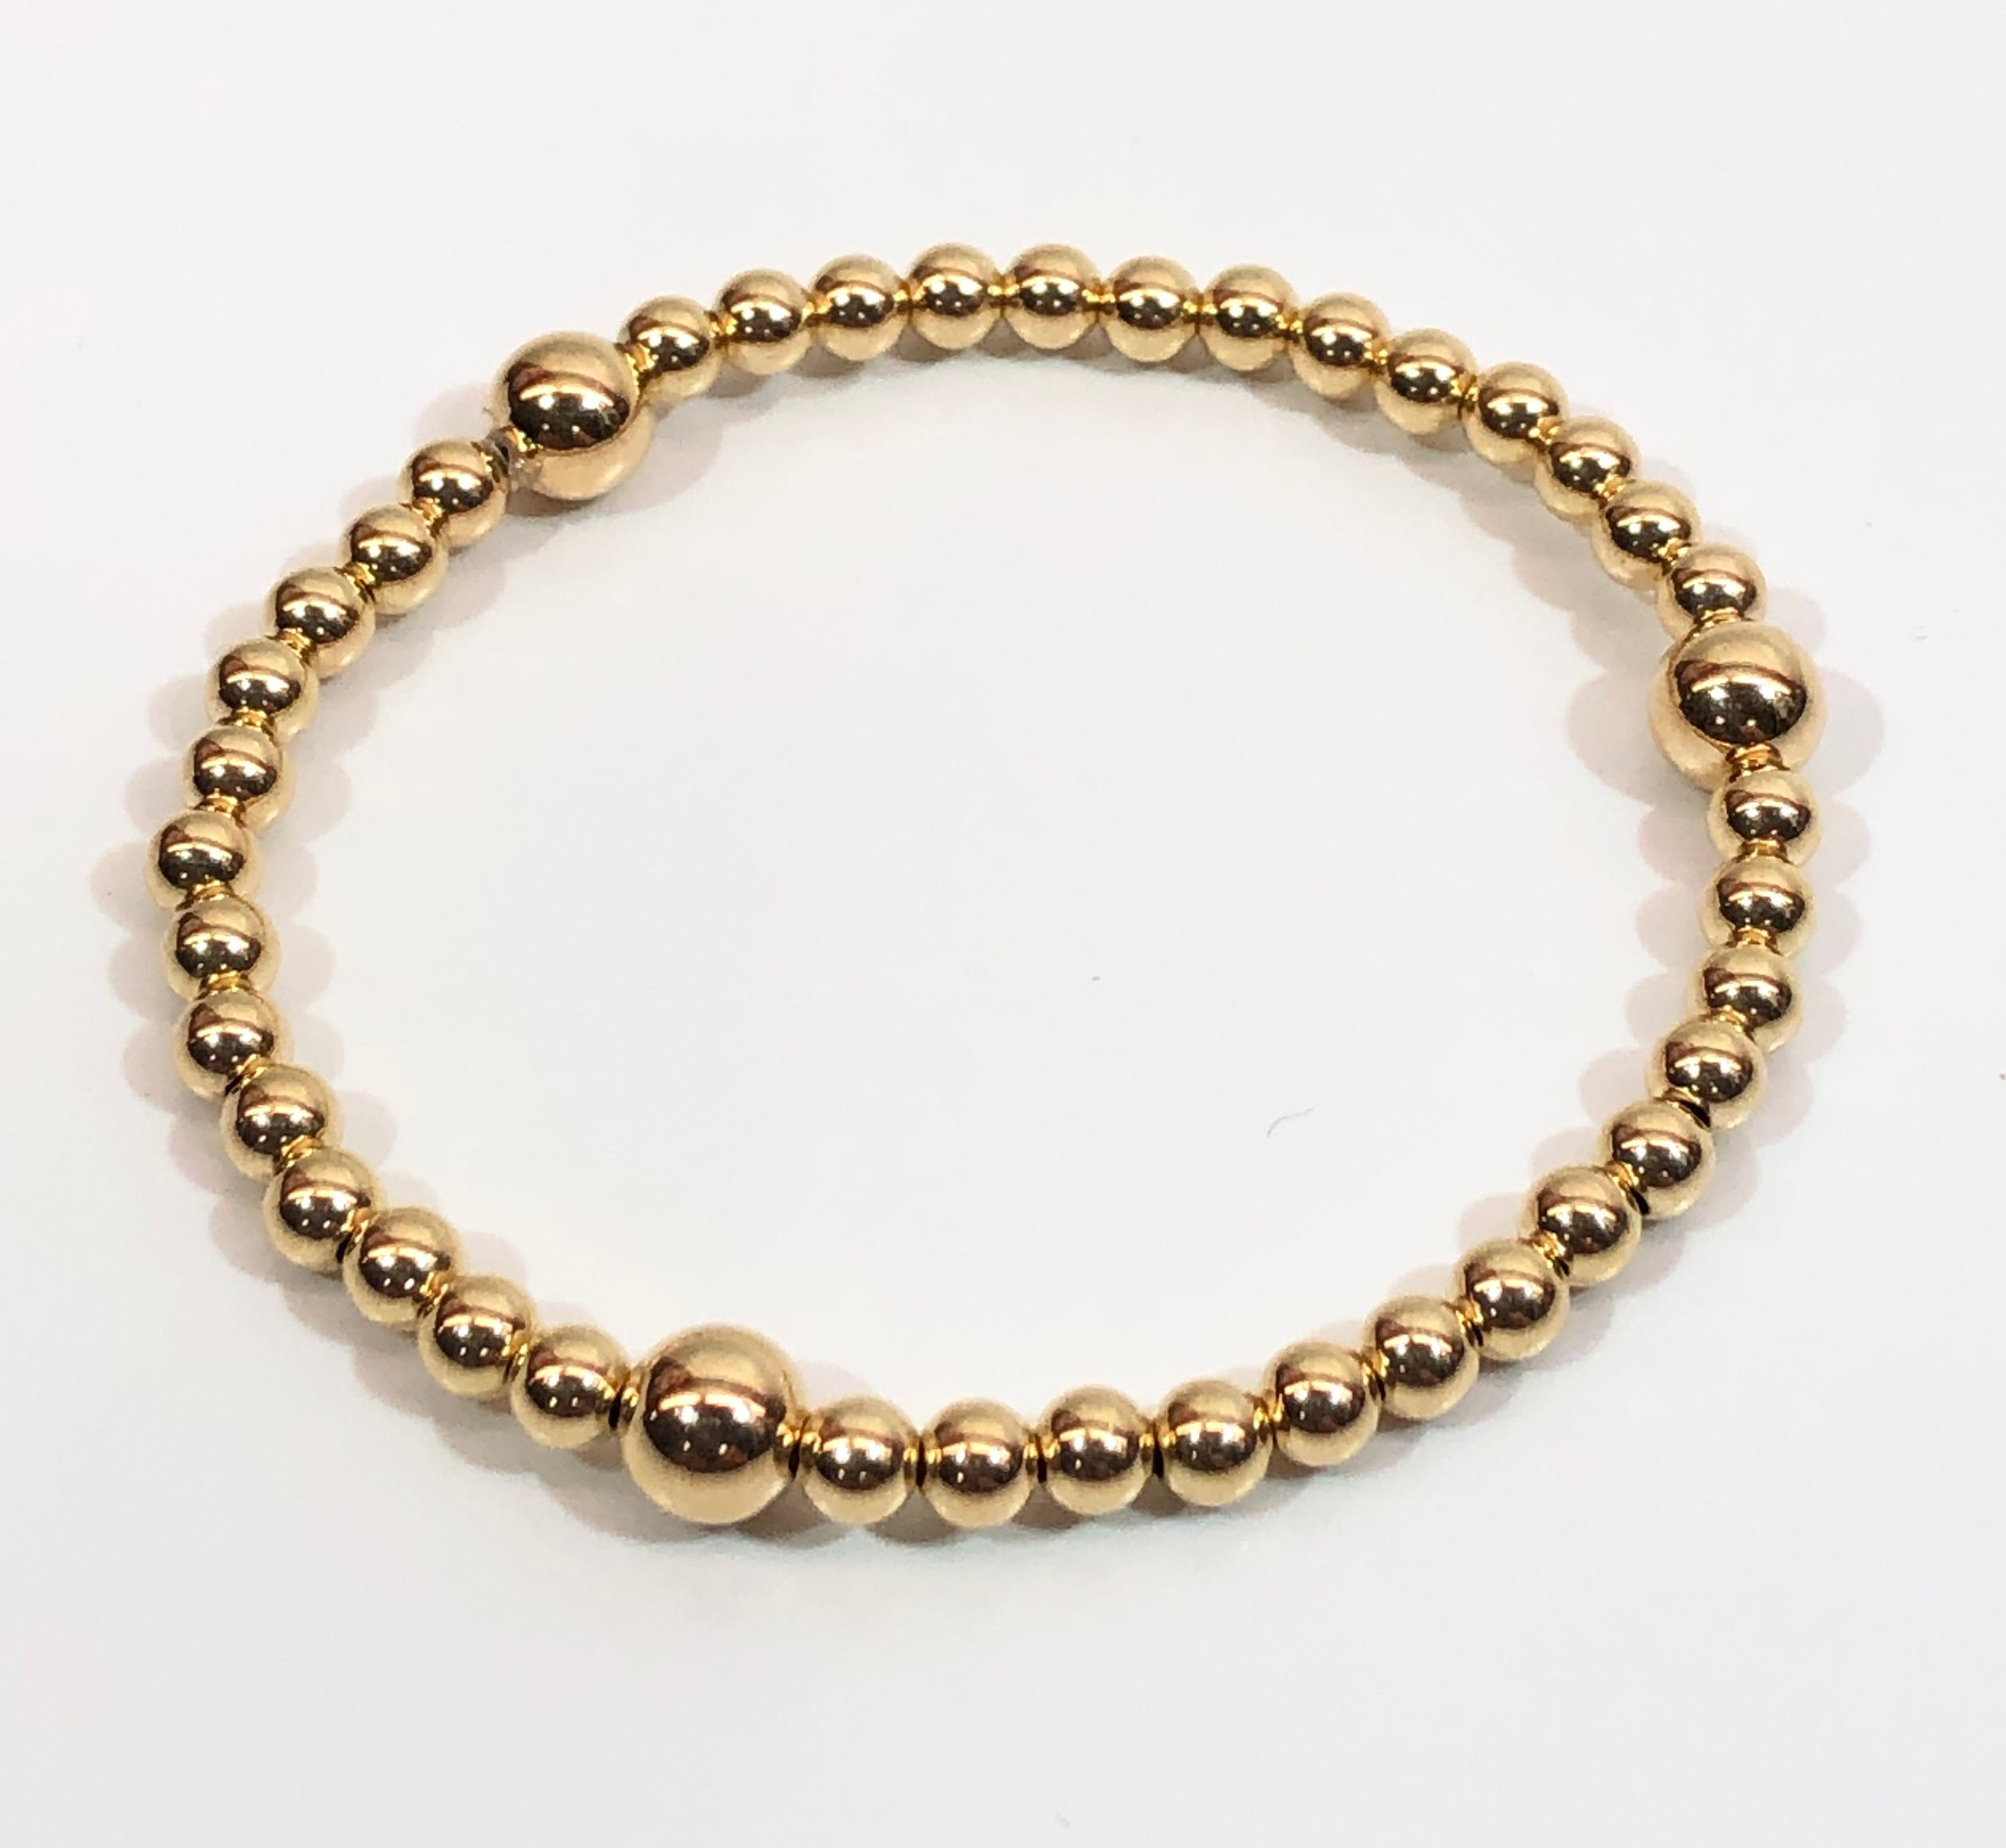 4mm 14kt Gold Filled Bead Bracelet with 3 6mm Gold Beads